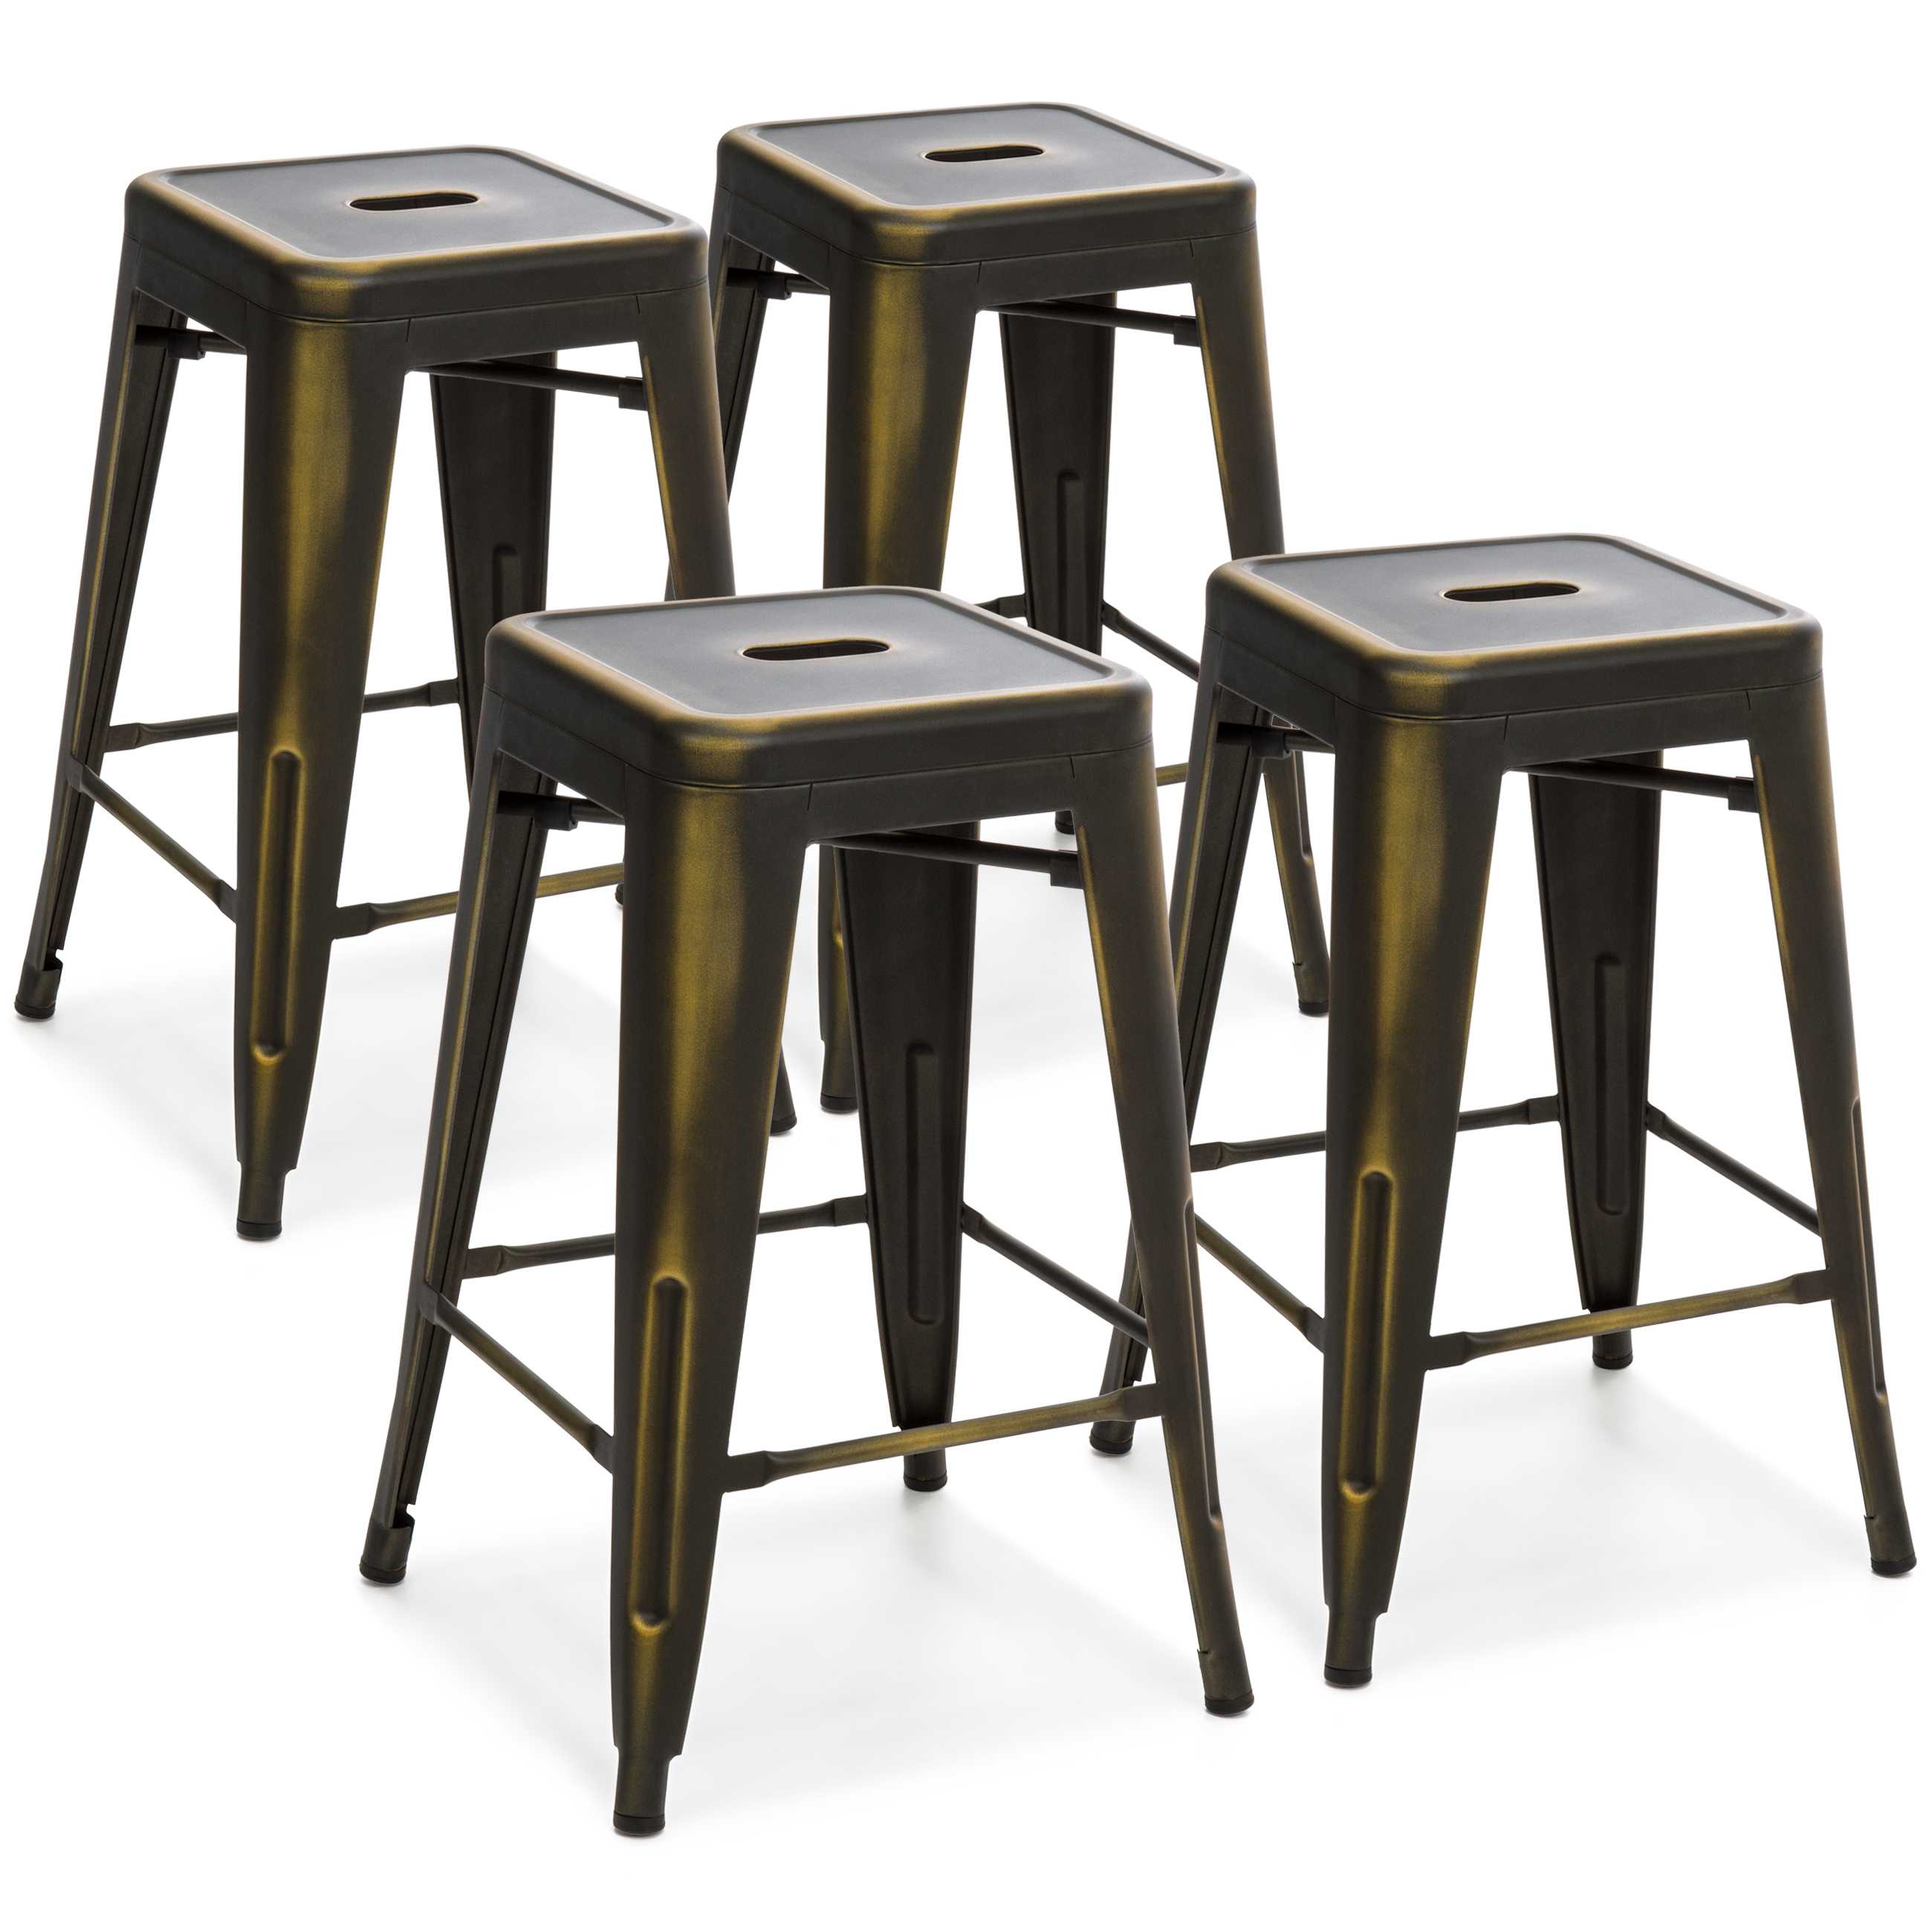 Best Choice Products 24in Set of 4 Stackable Modern Industrial Distressed Metal Counter Height Bar Stools - Copper